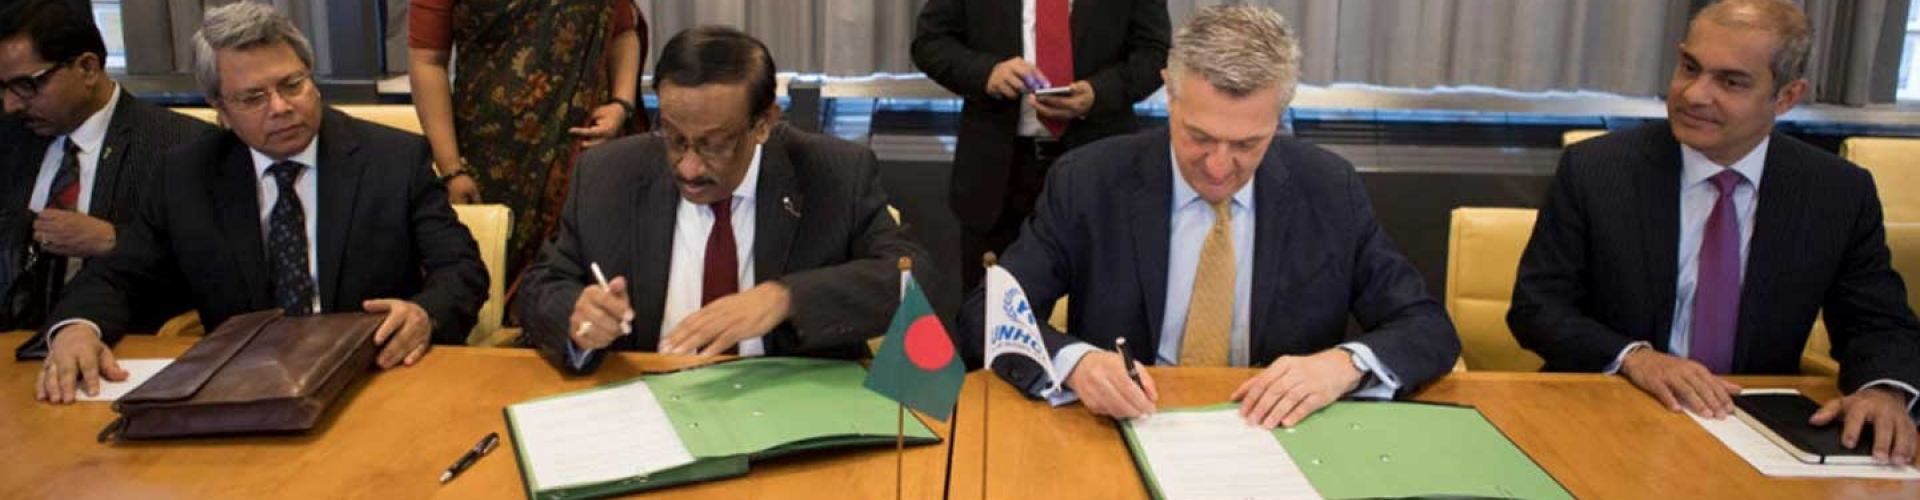 Bangladesh and UNHCR agree on voluntary returns framework for when refugees decide conditions are right.